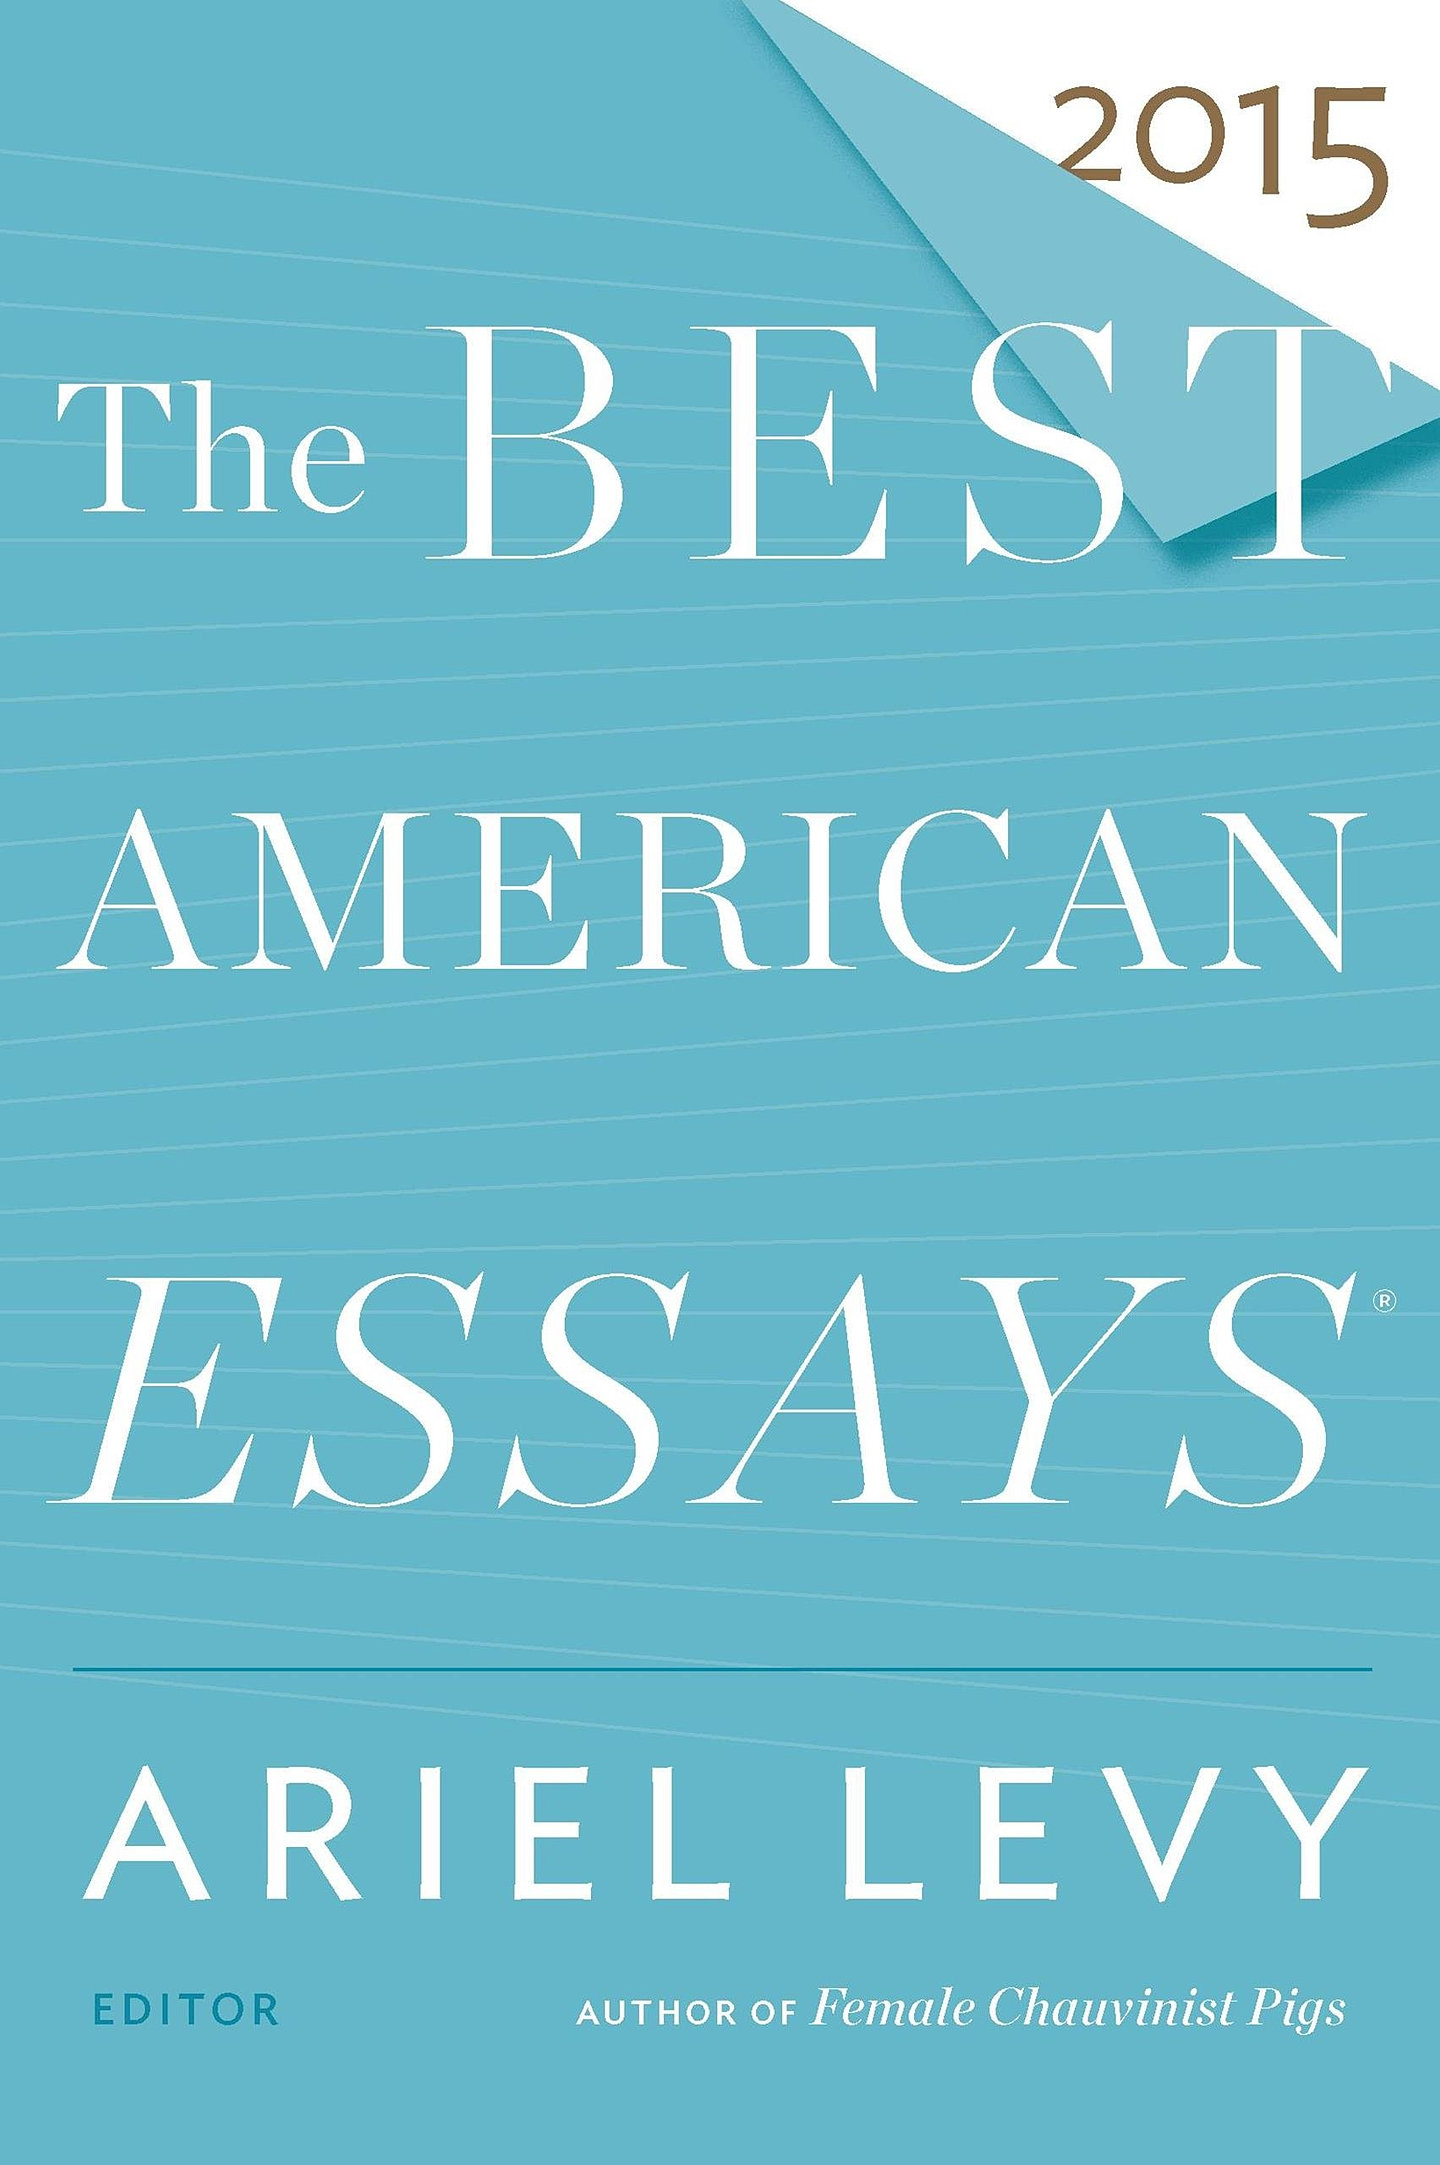 amy butcher essayist former reenacting distinguished as notable essay in best american essays 2015